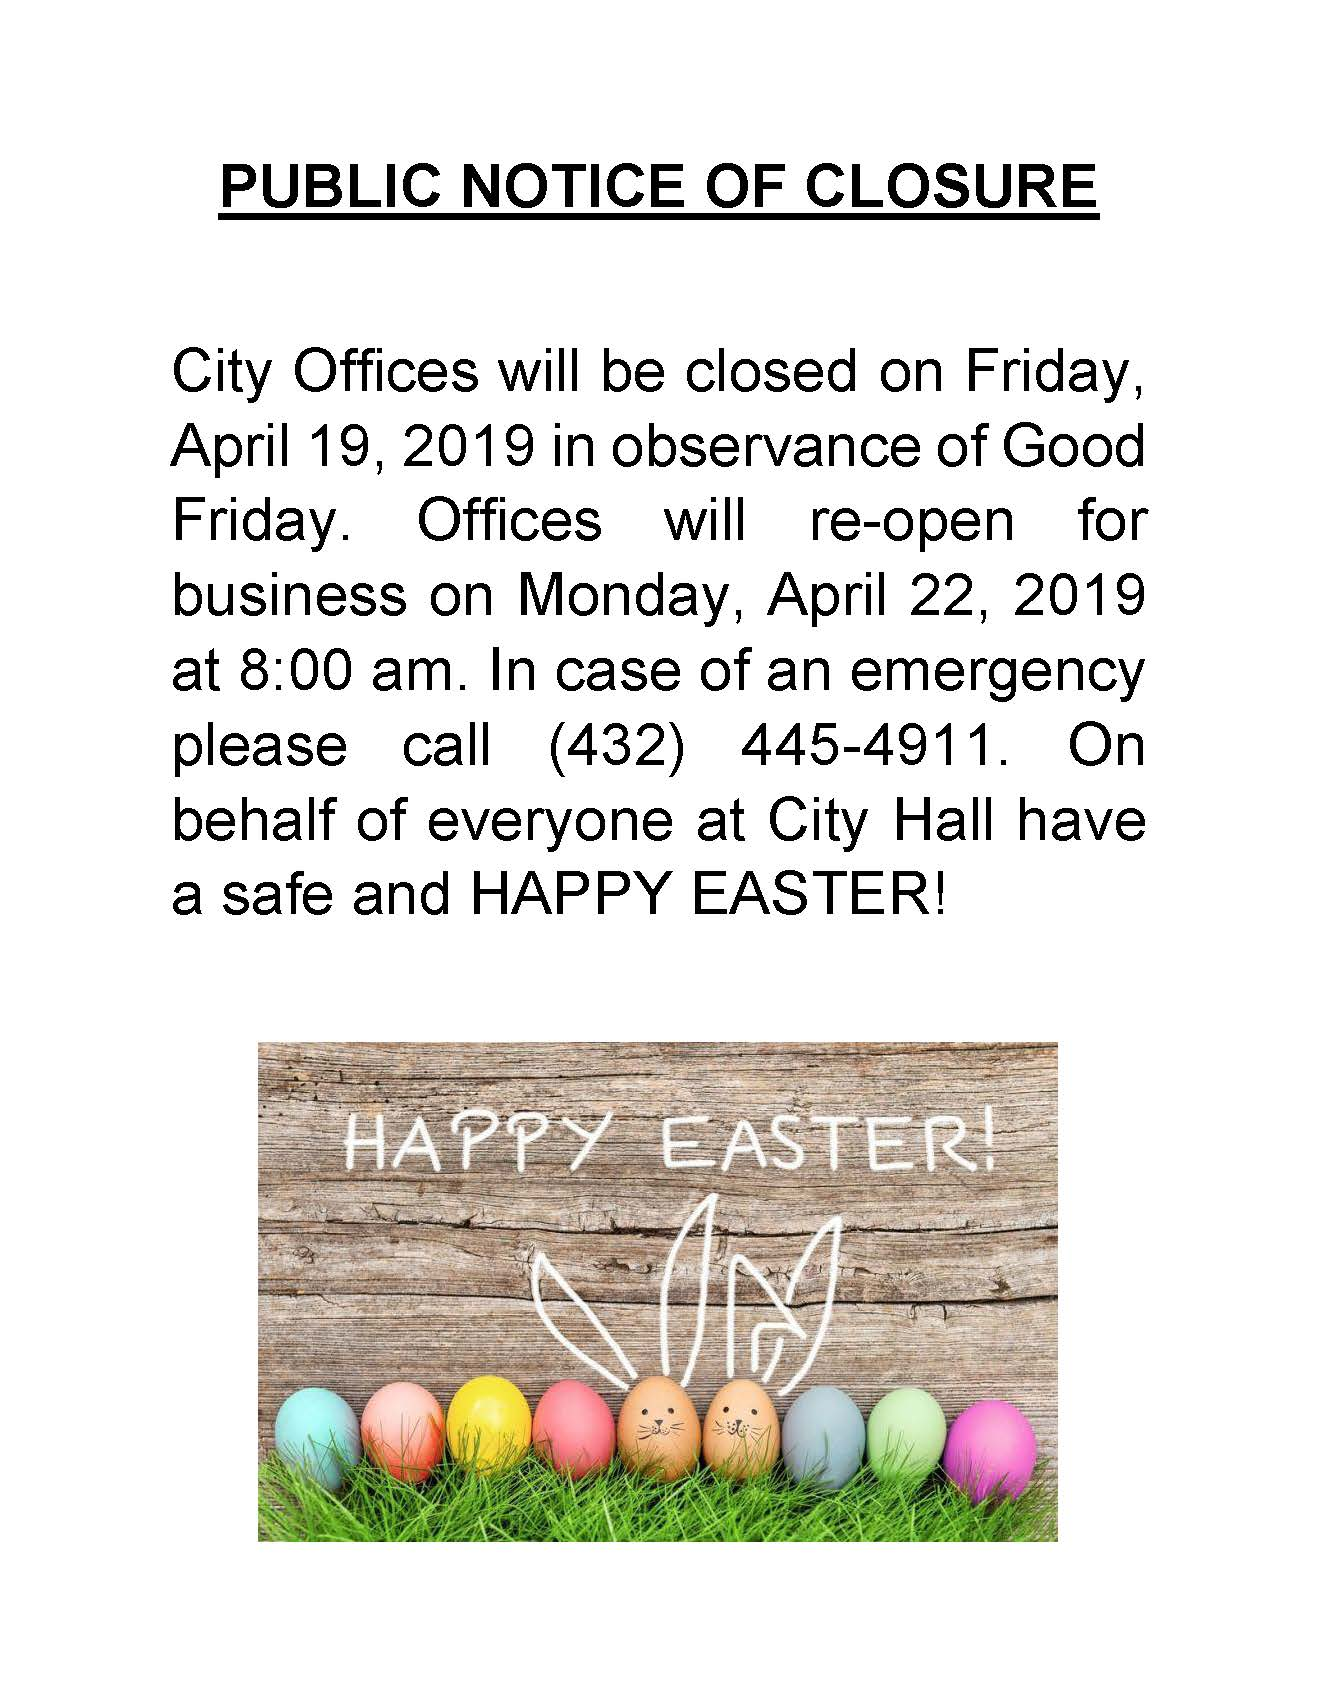 City Hall Closure 04/19/2019